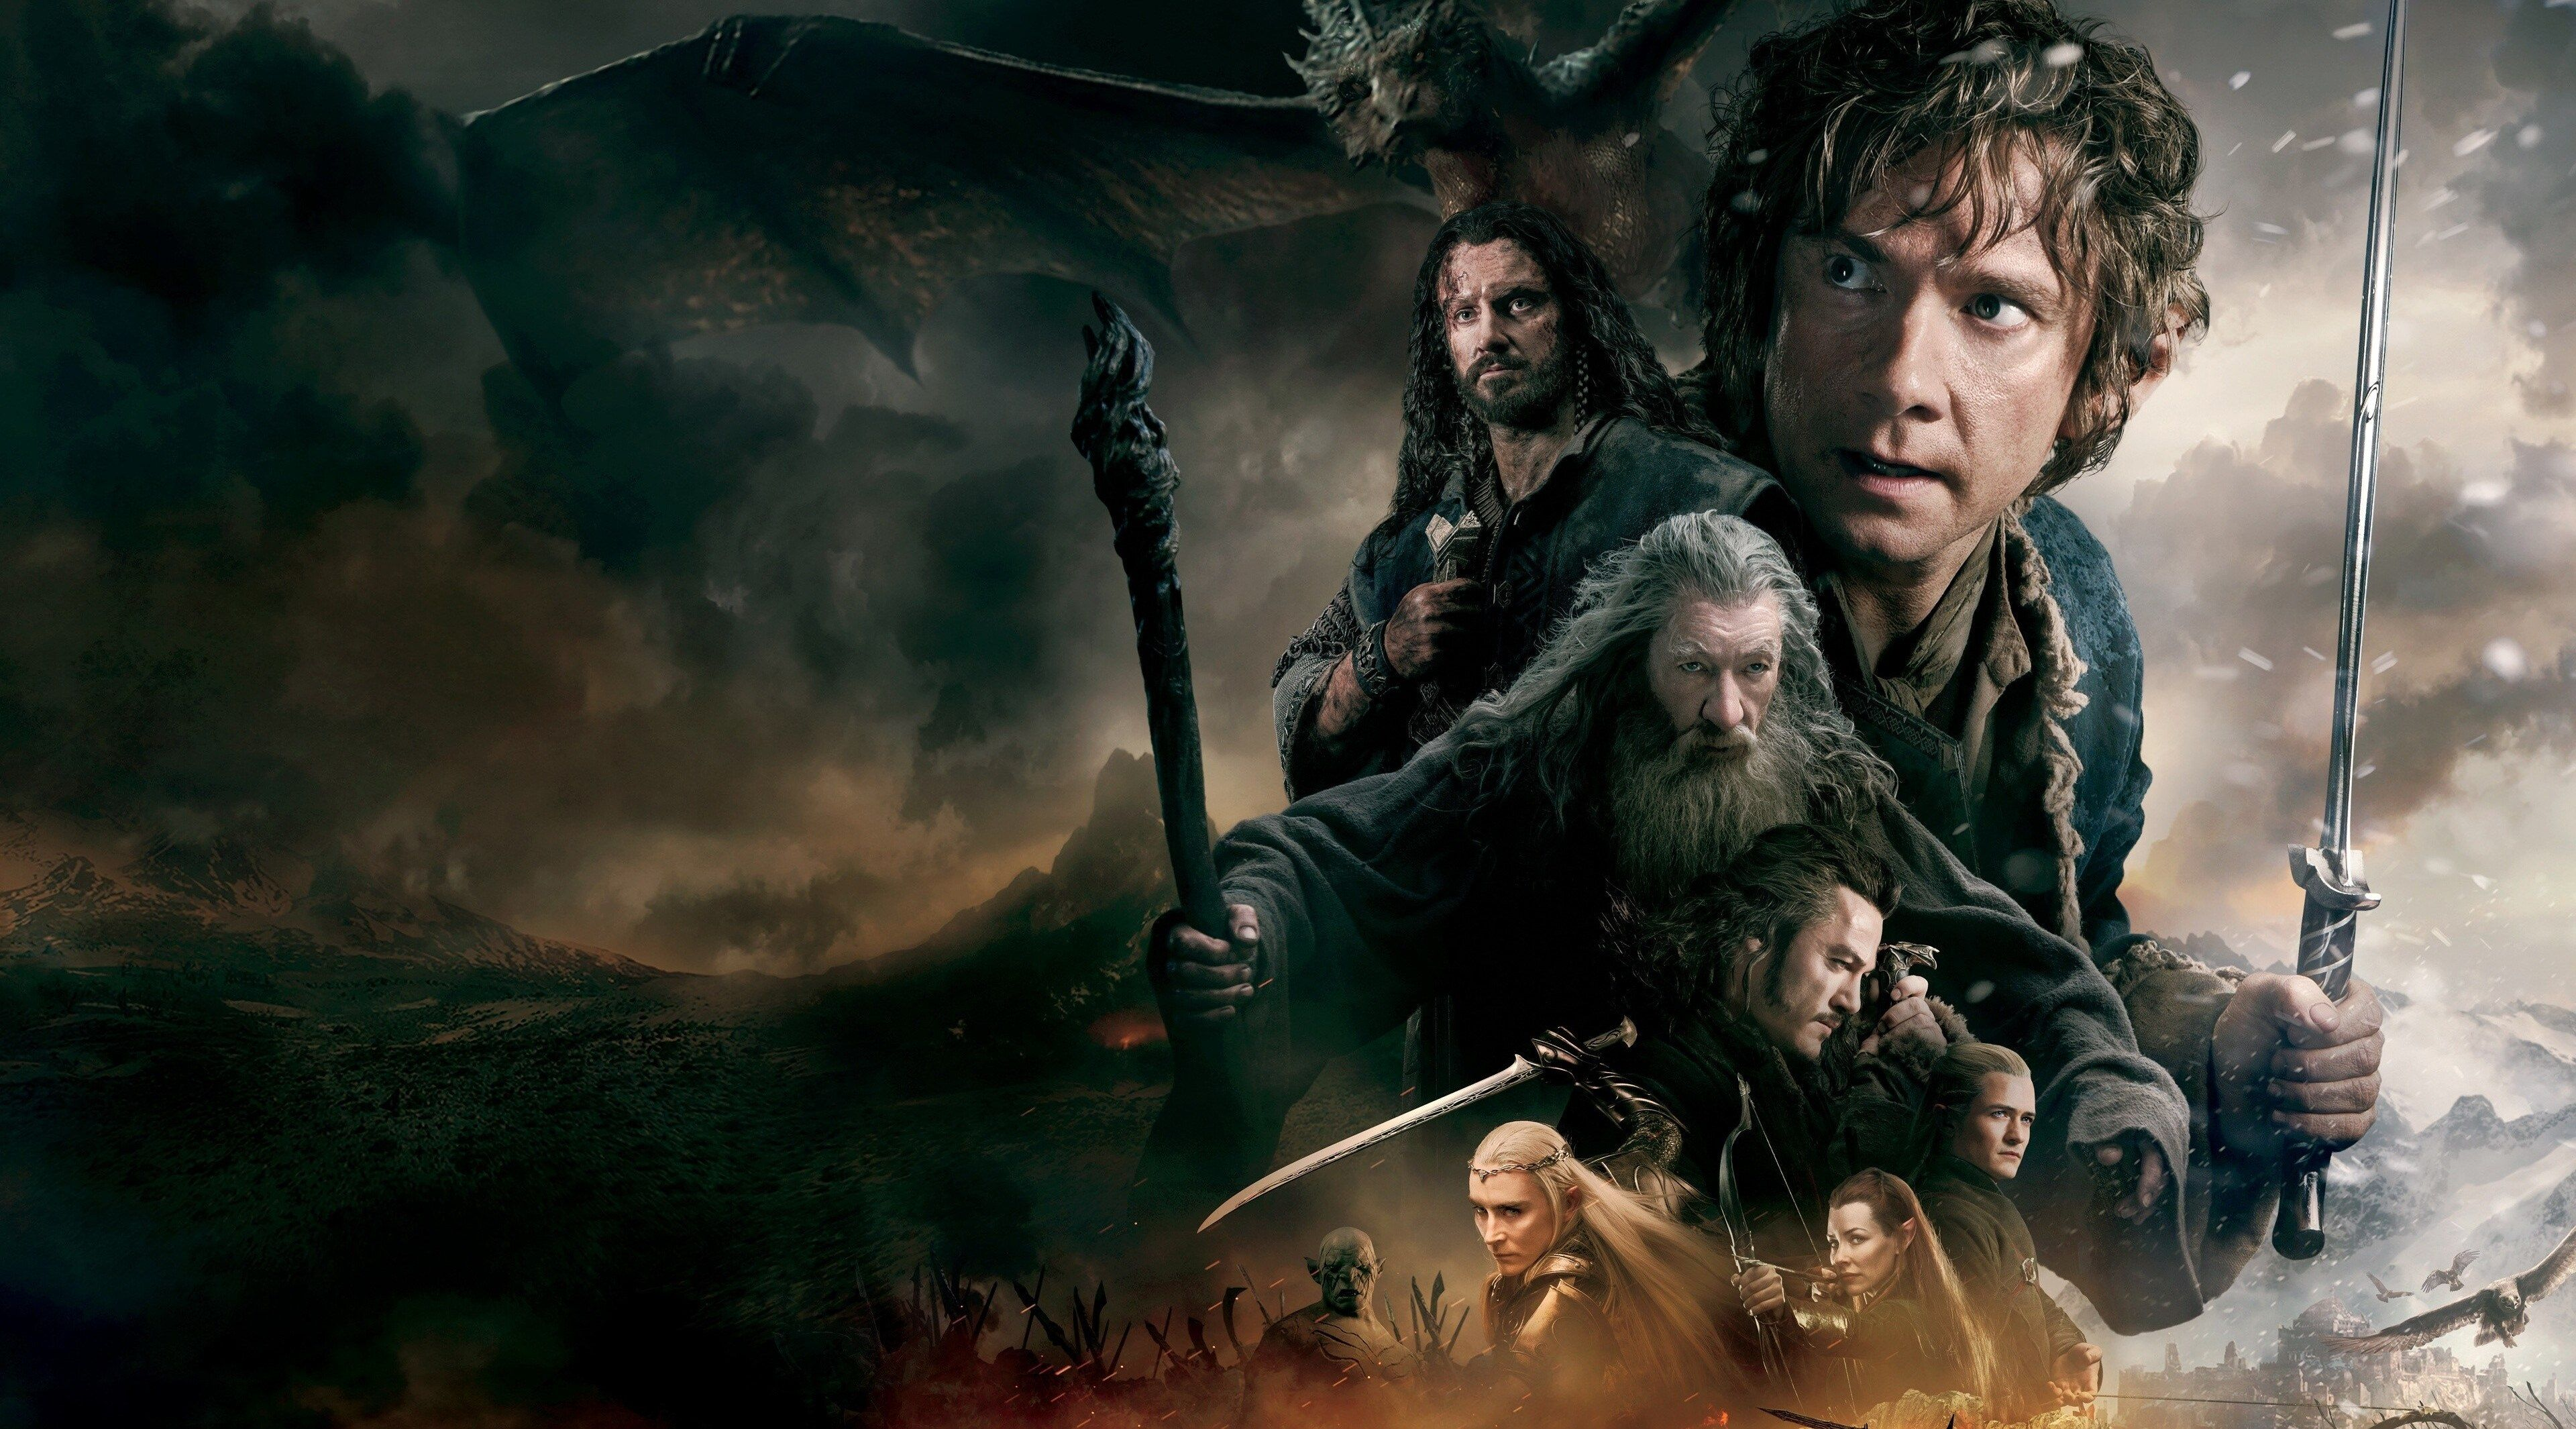 3840x2130 Hobbit 4k Best Hd Wallpaper For Pc Free Download